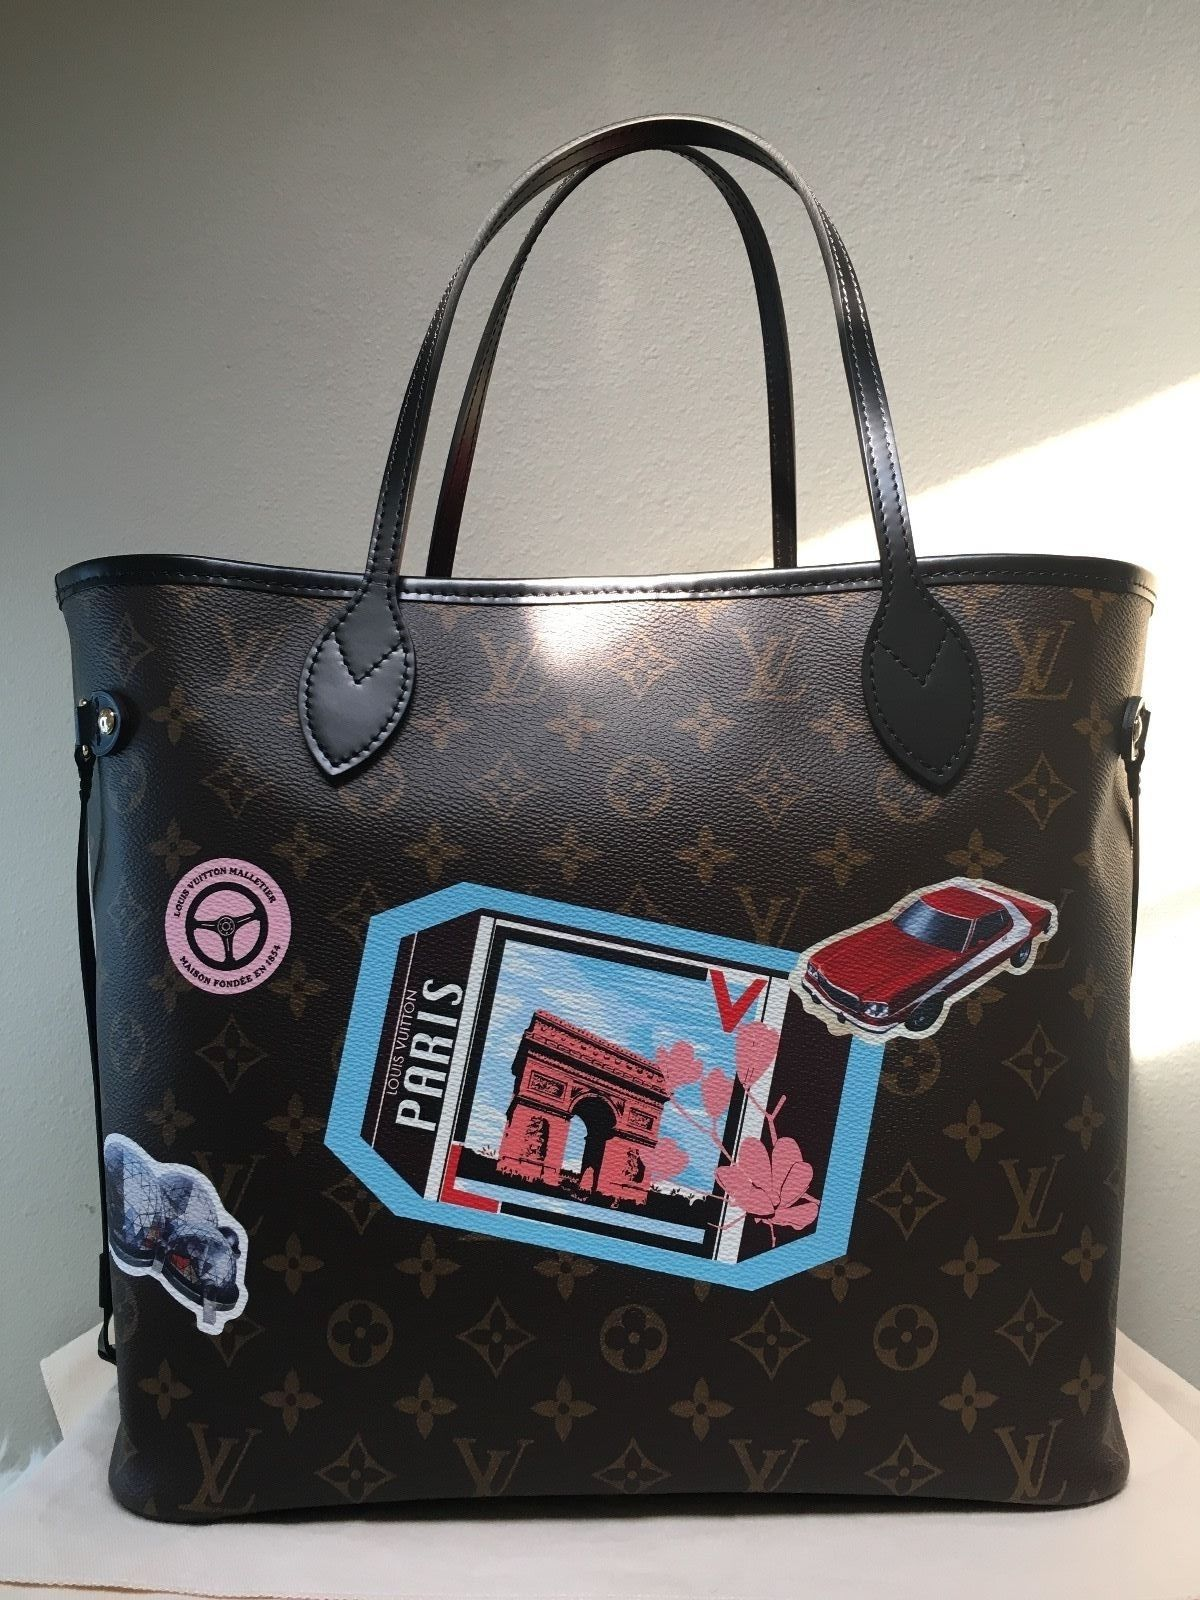 4505cb22317d Louis Vuitton Neverfull MM World Tour Limited Edition